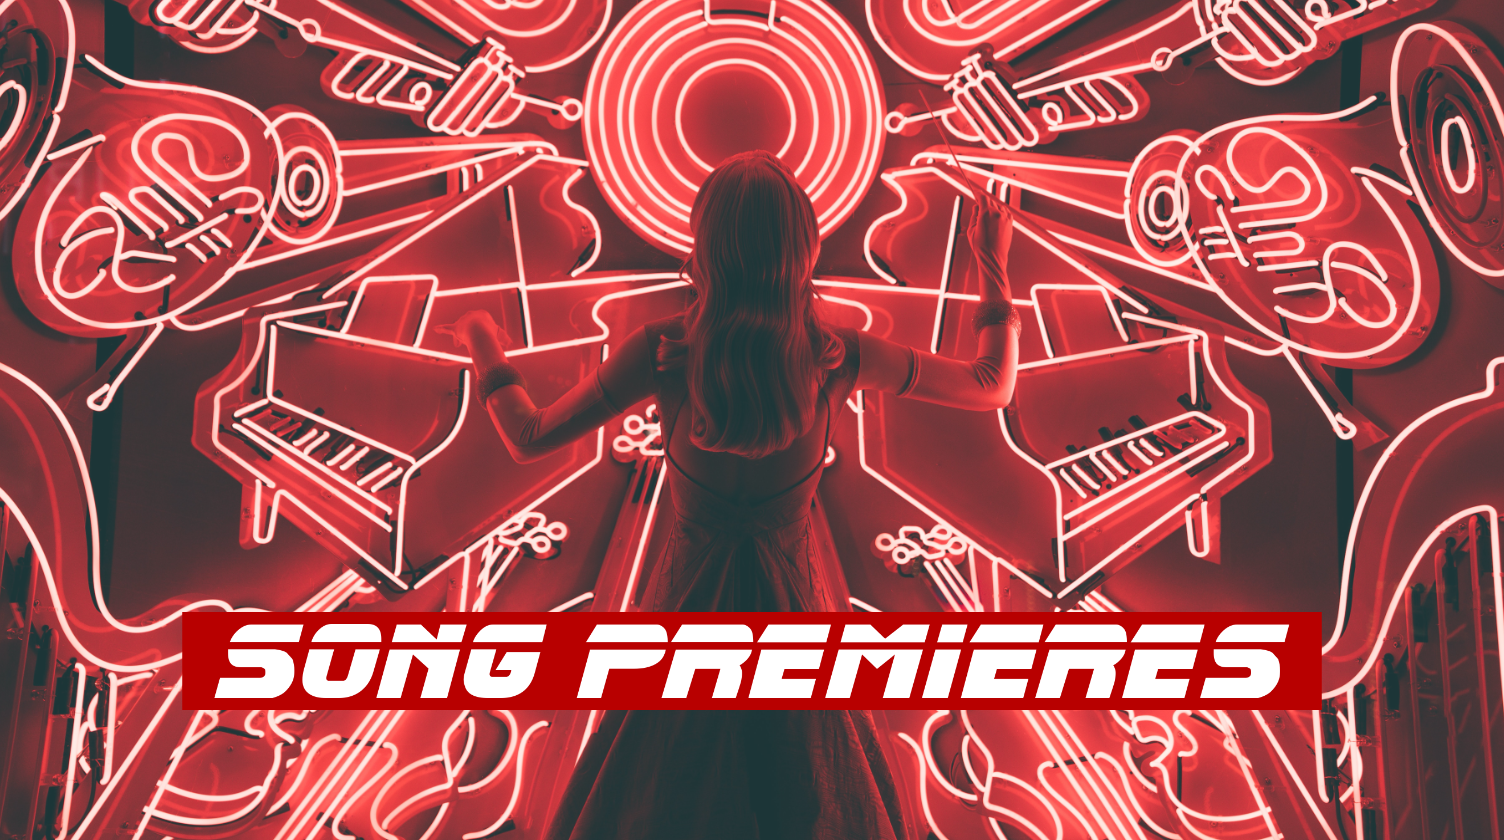 song-premiere